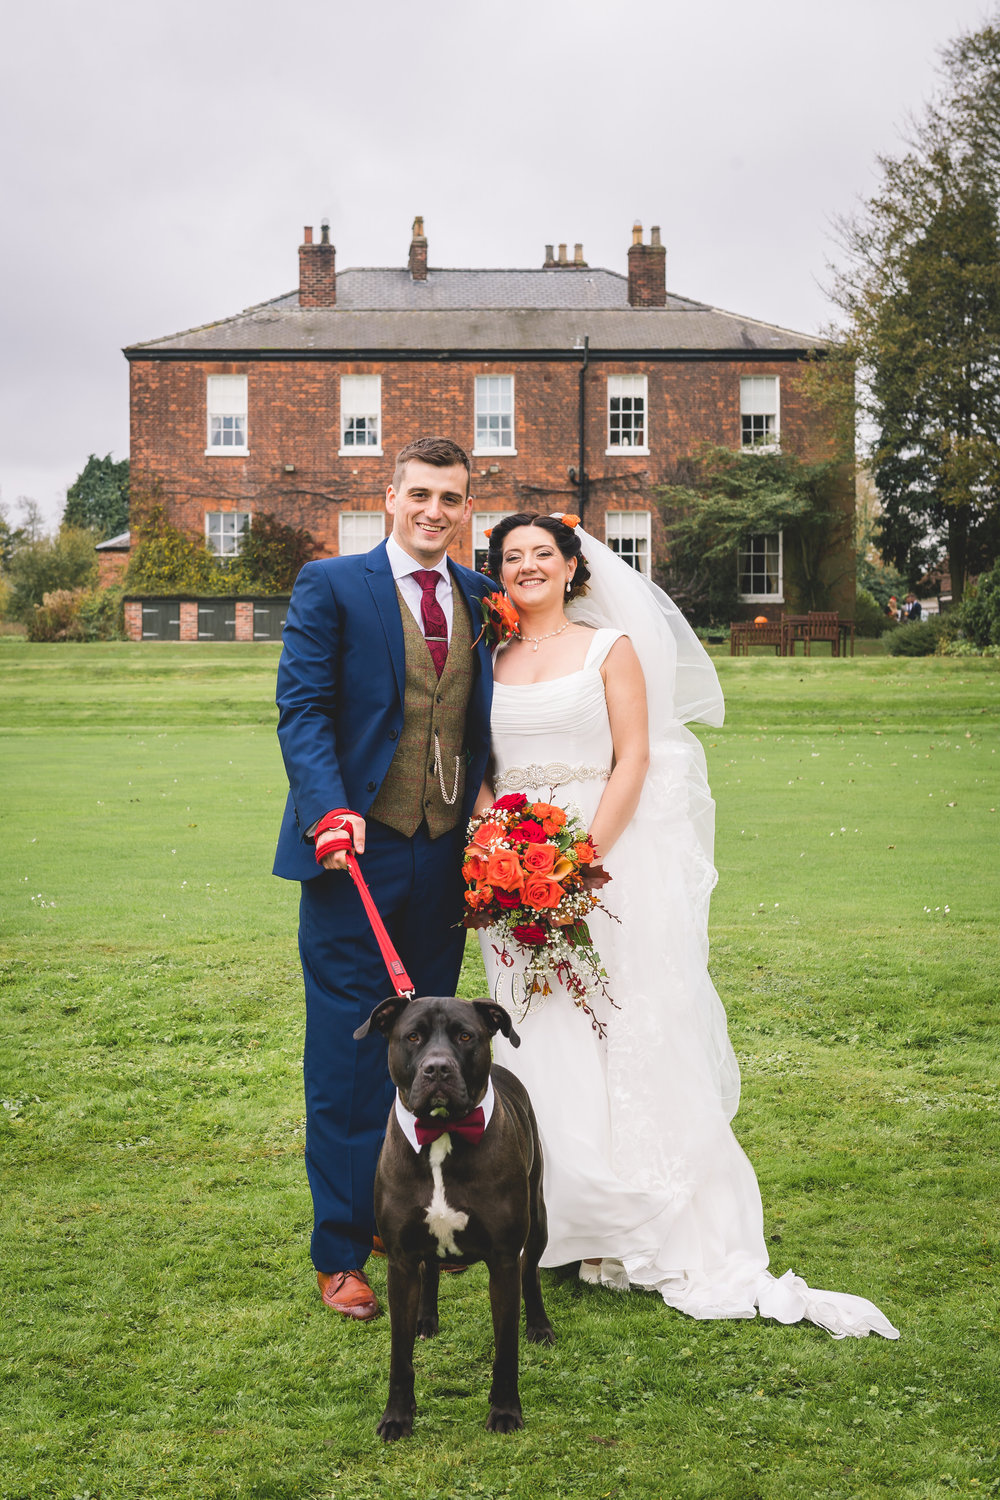 dog-wedding-leeds-wedding-photographer7.jpg